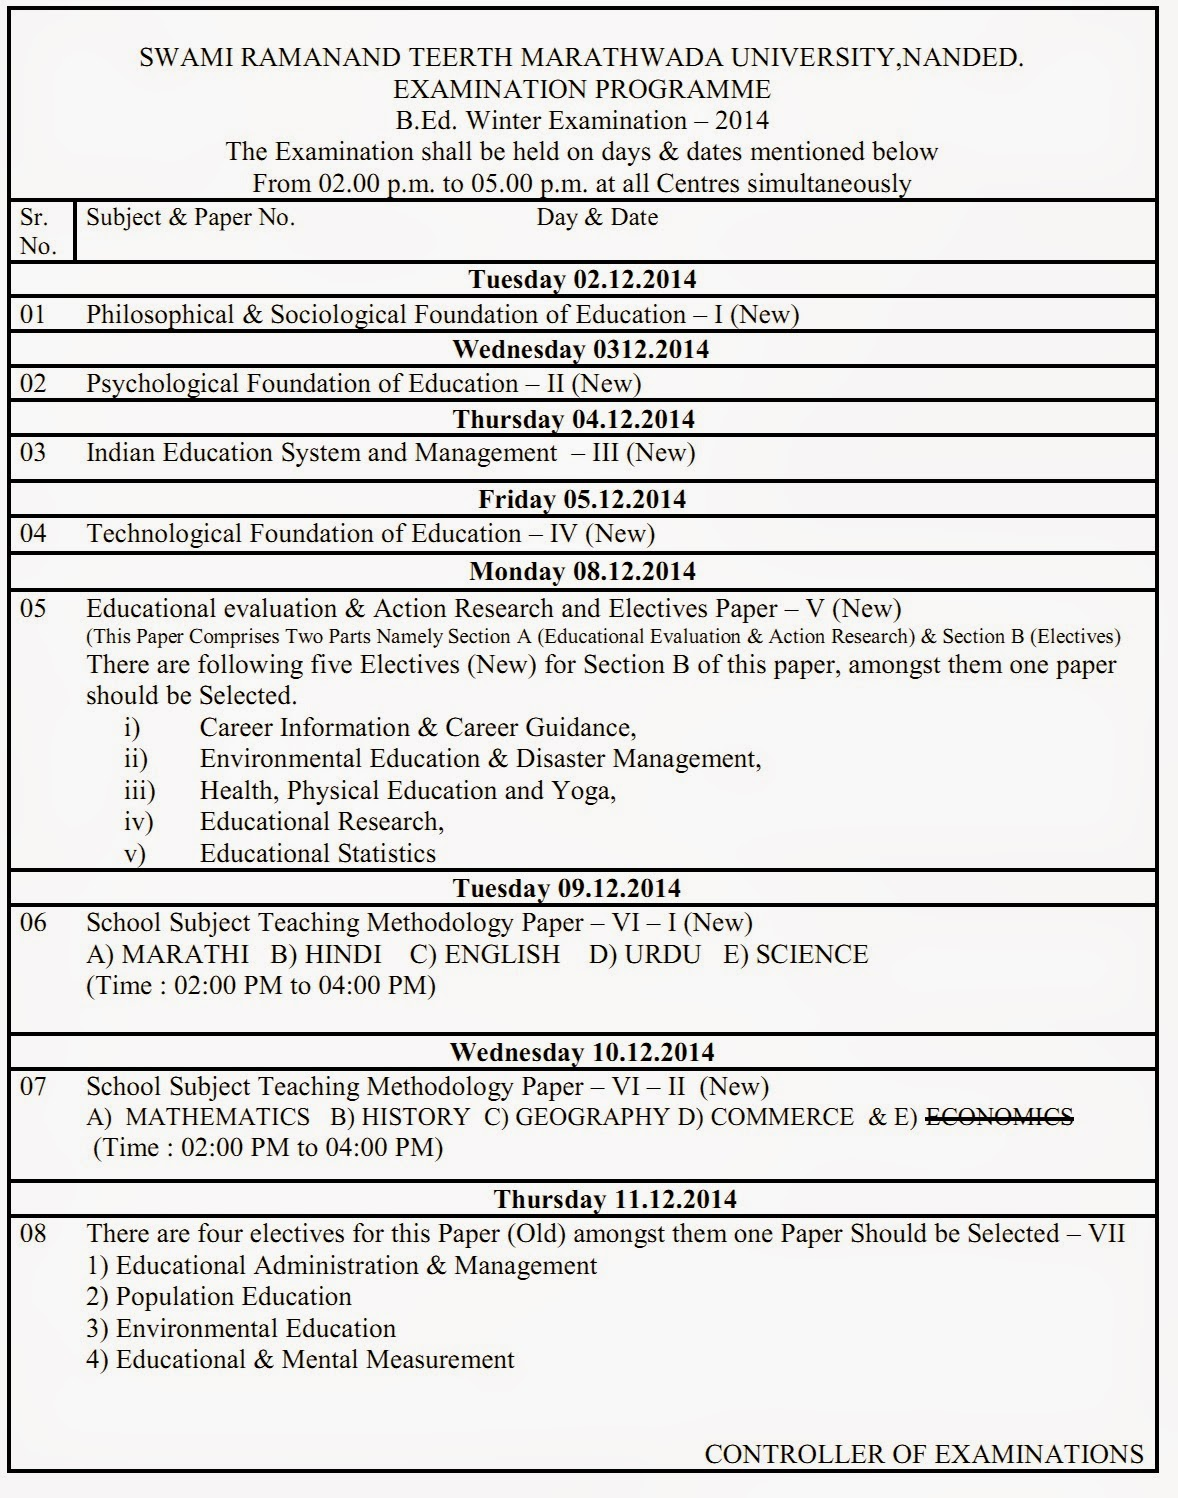 B.Ed Nanded University Winter 2014 Timetable